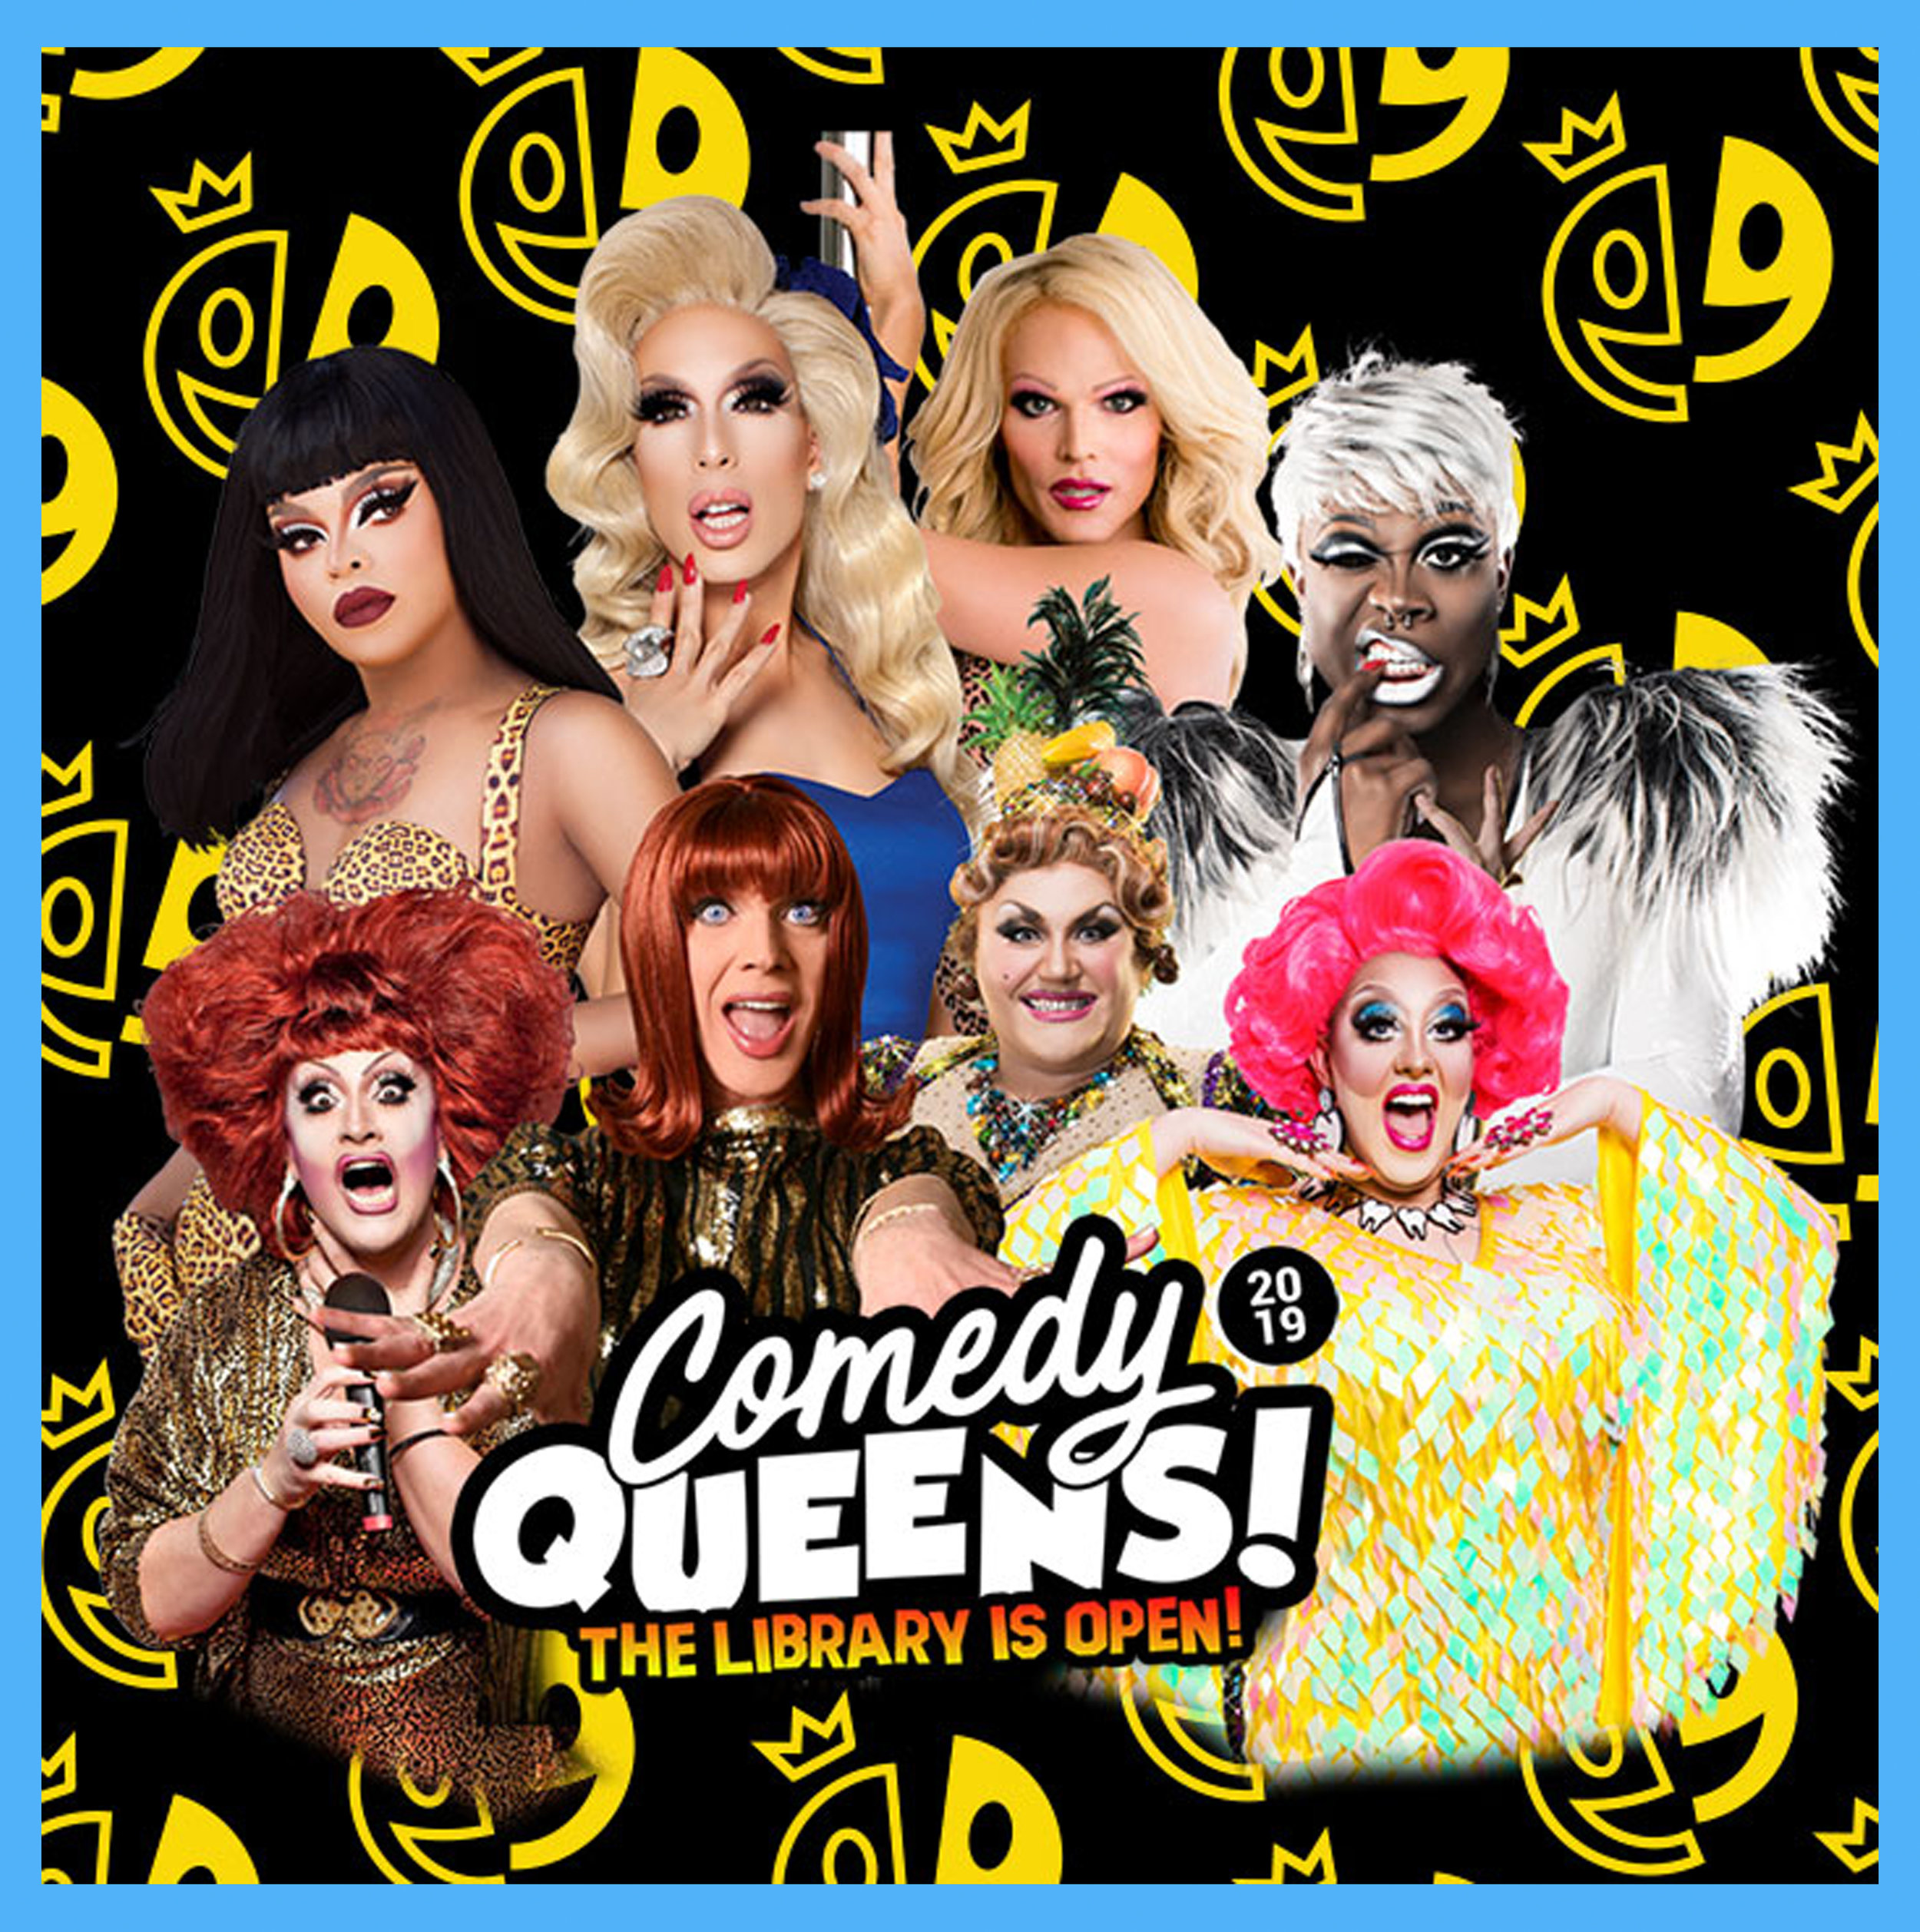 MELBOURNE, AU - August 23rd, 2019, 7:00PMYou loved laughing your face off this year, now get ready to do it all again in 2019! We'll be bringing you more laughs than you can handle with this international cast of comedy queens. We've got your favourites from Youtube, Drag Race and this year, we're adding some local talent in to the mix.